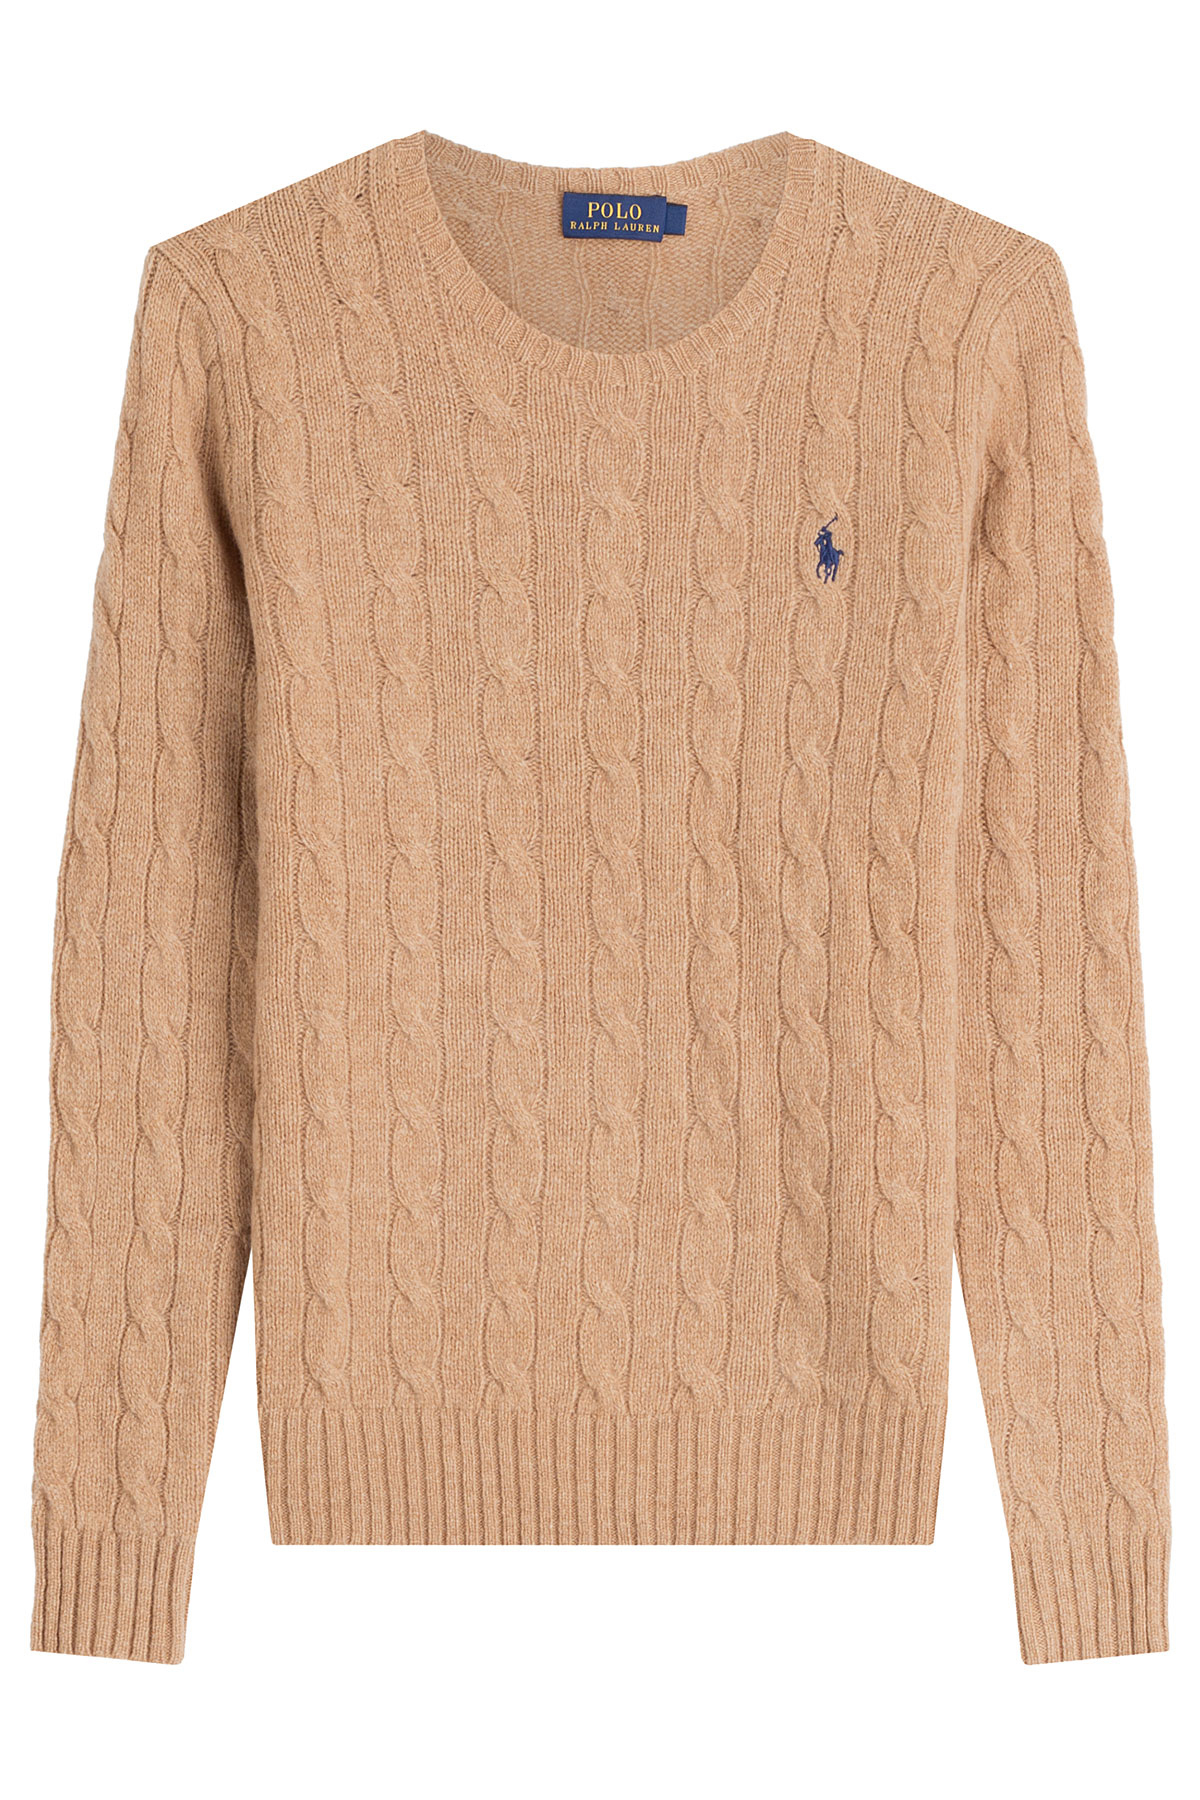 lyst polo ralph lauren merino wool cable knit pullover. Black Bedroom Furniture Sets. Home Design Ideas